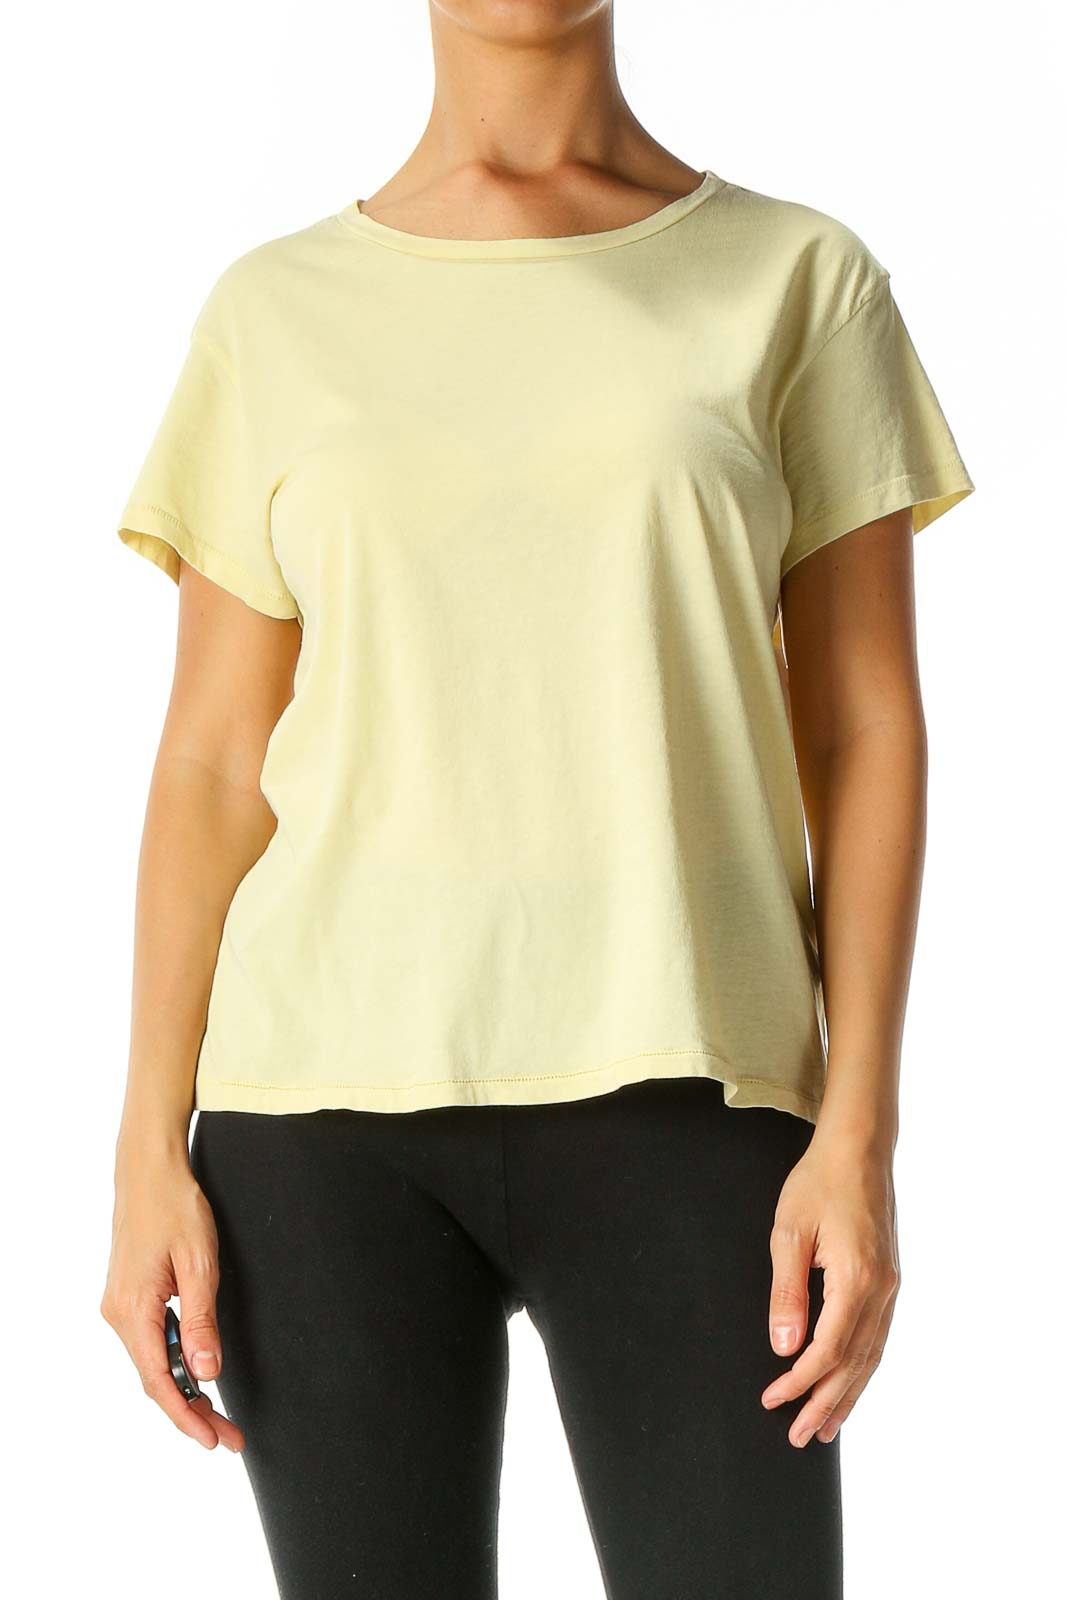 Yellow Solid Casual T-Shirt Front